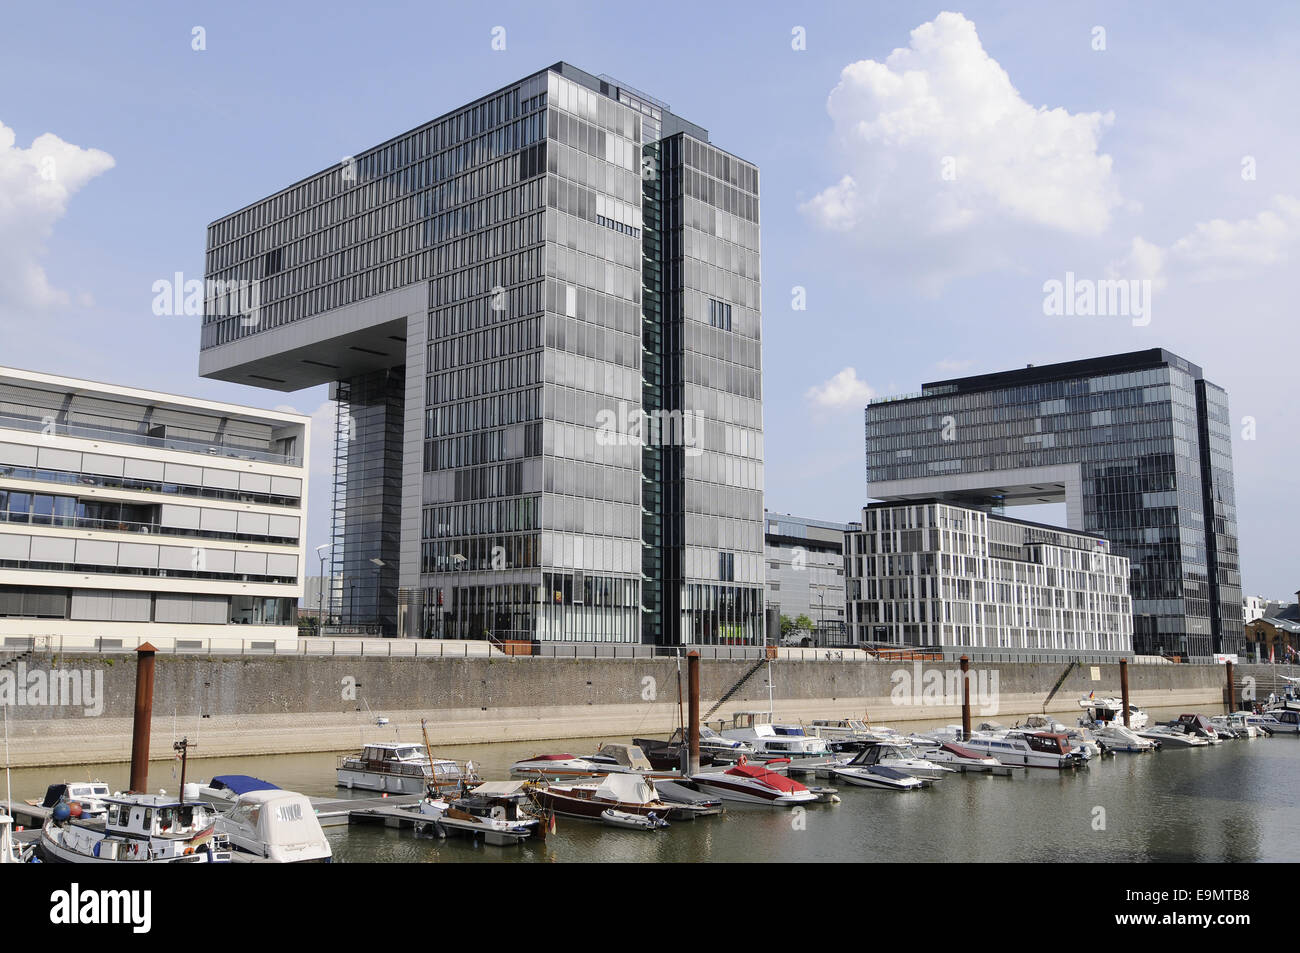 crane towers, Cologne, Germany Stock Photo